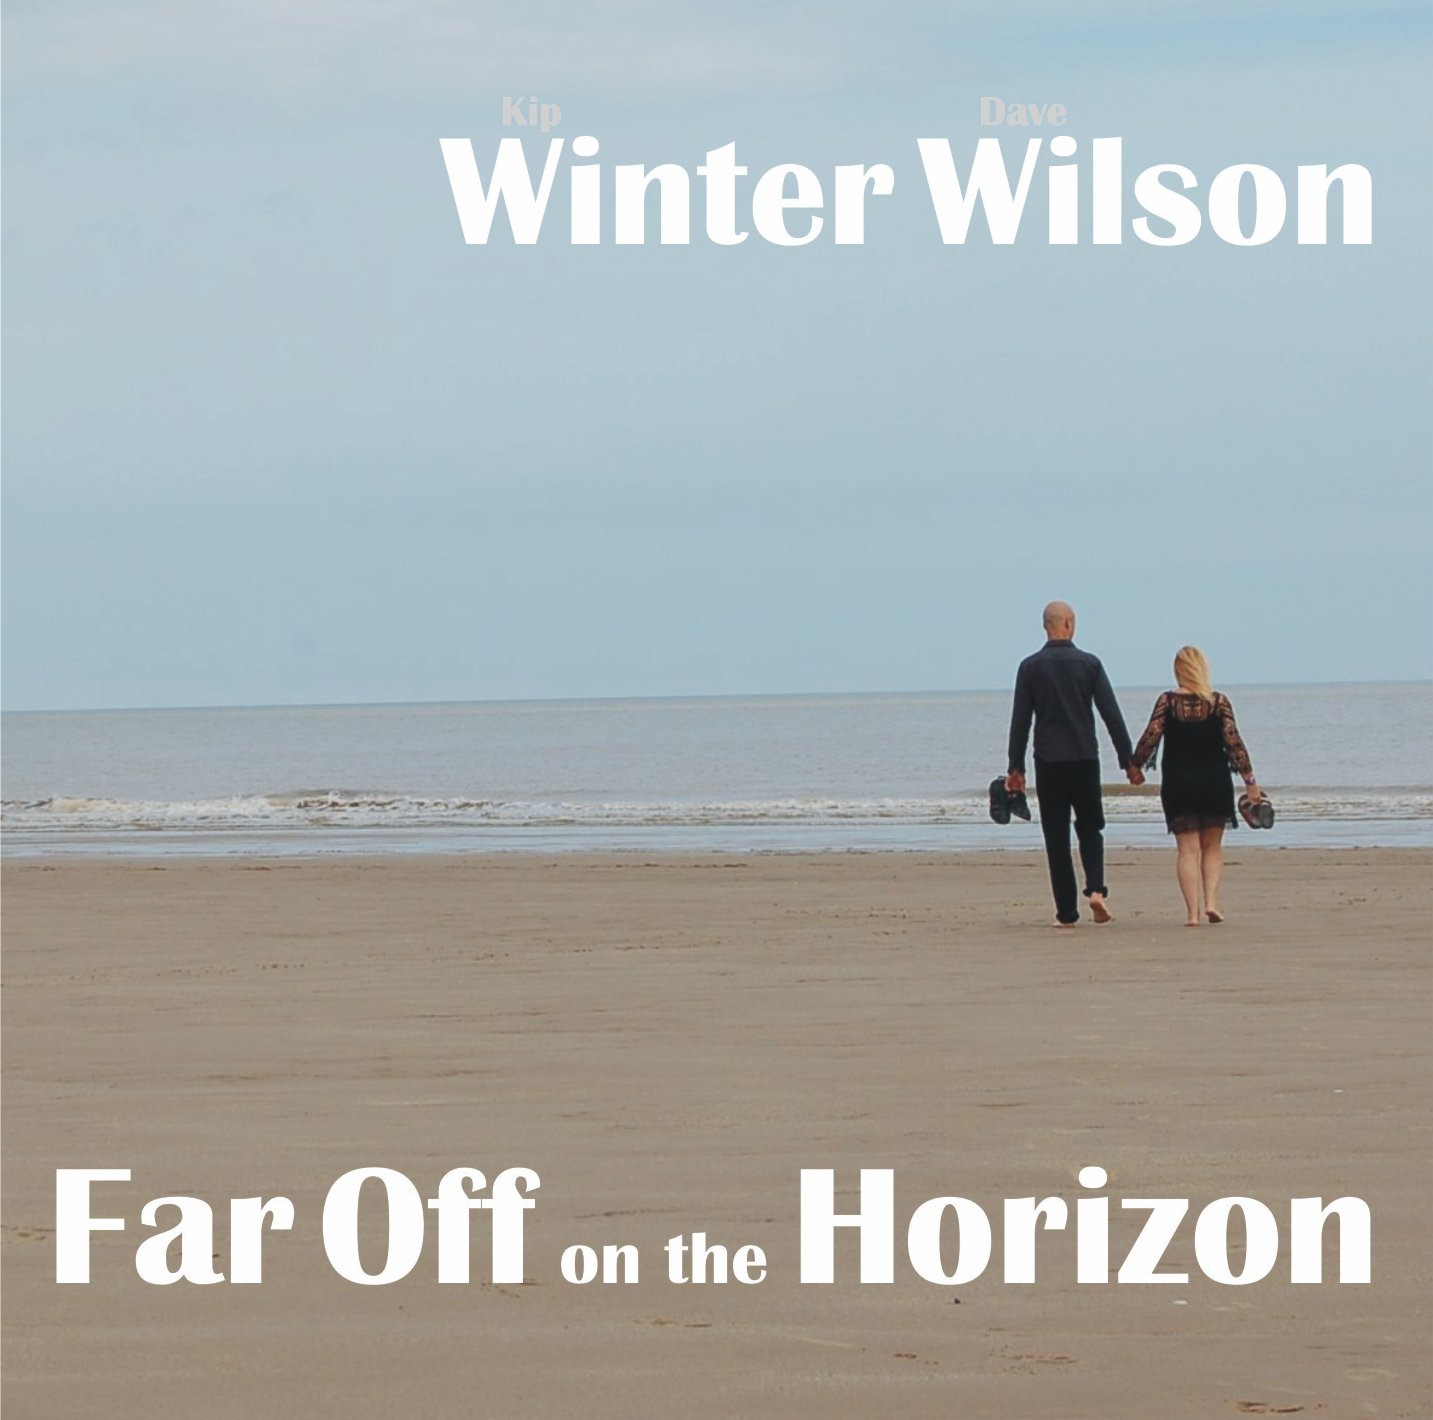 Far Off on the Horizon CD cover